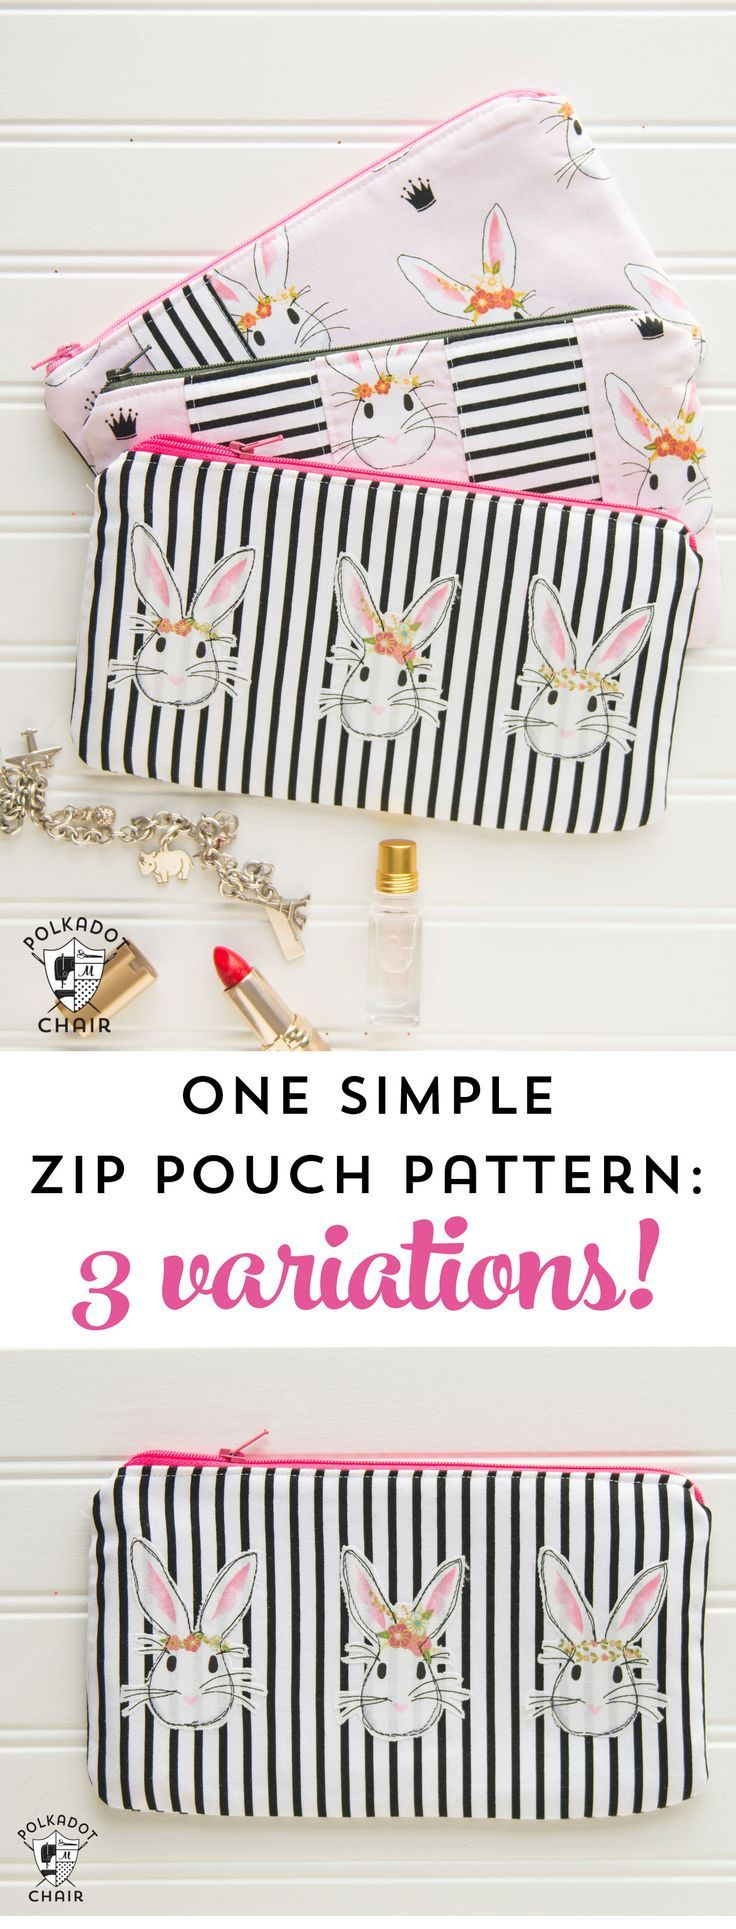 Cute Variations for a Simple Zip Pouch Pattern